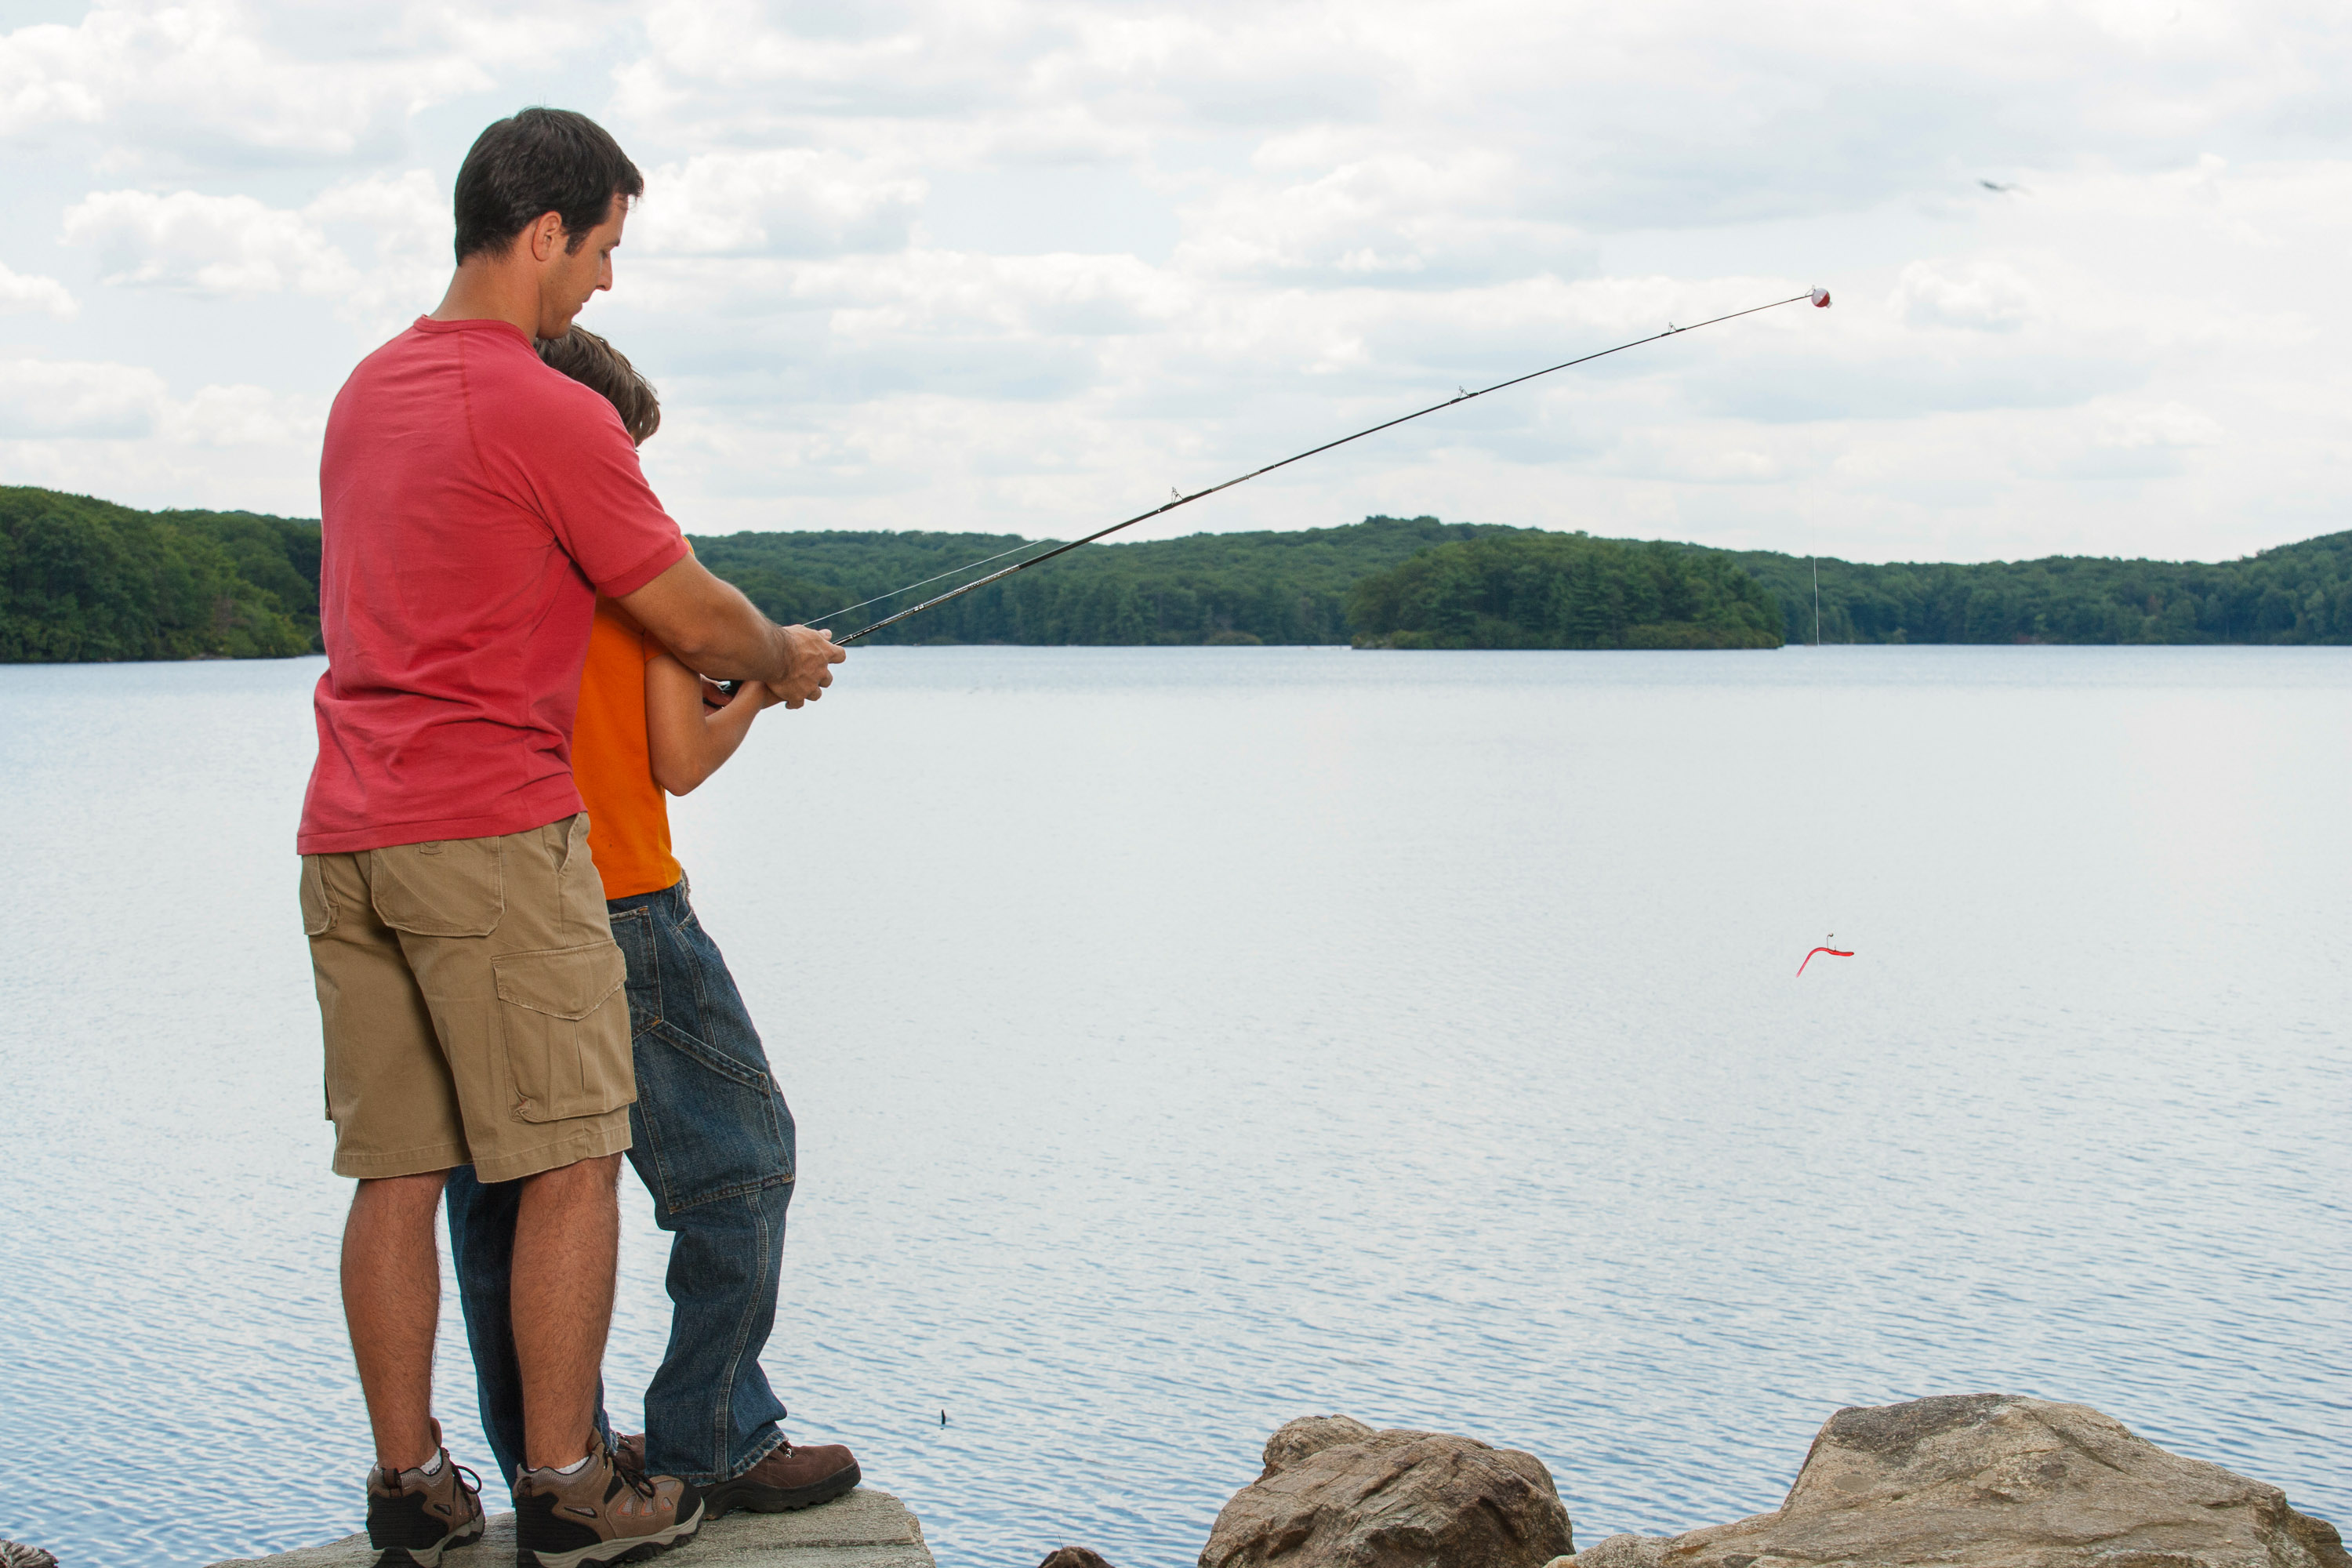 Father and son fishing at lake together